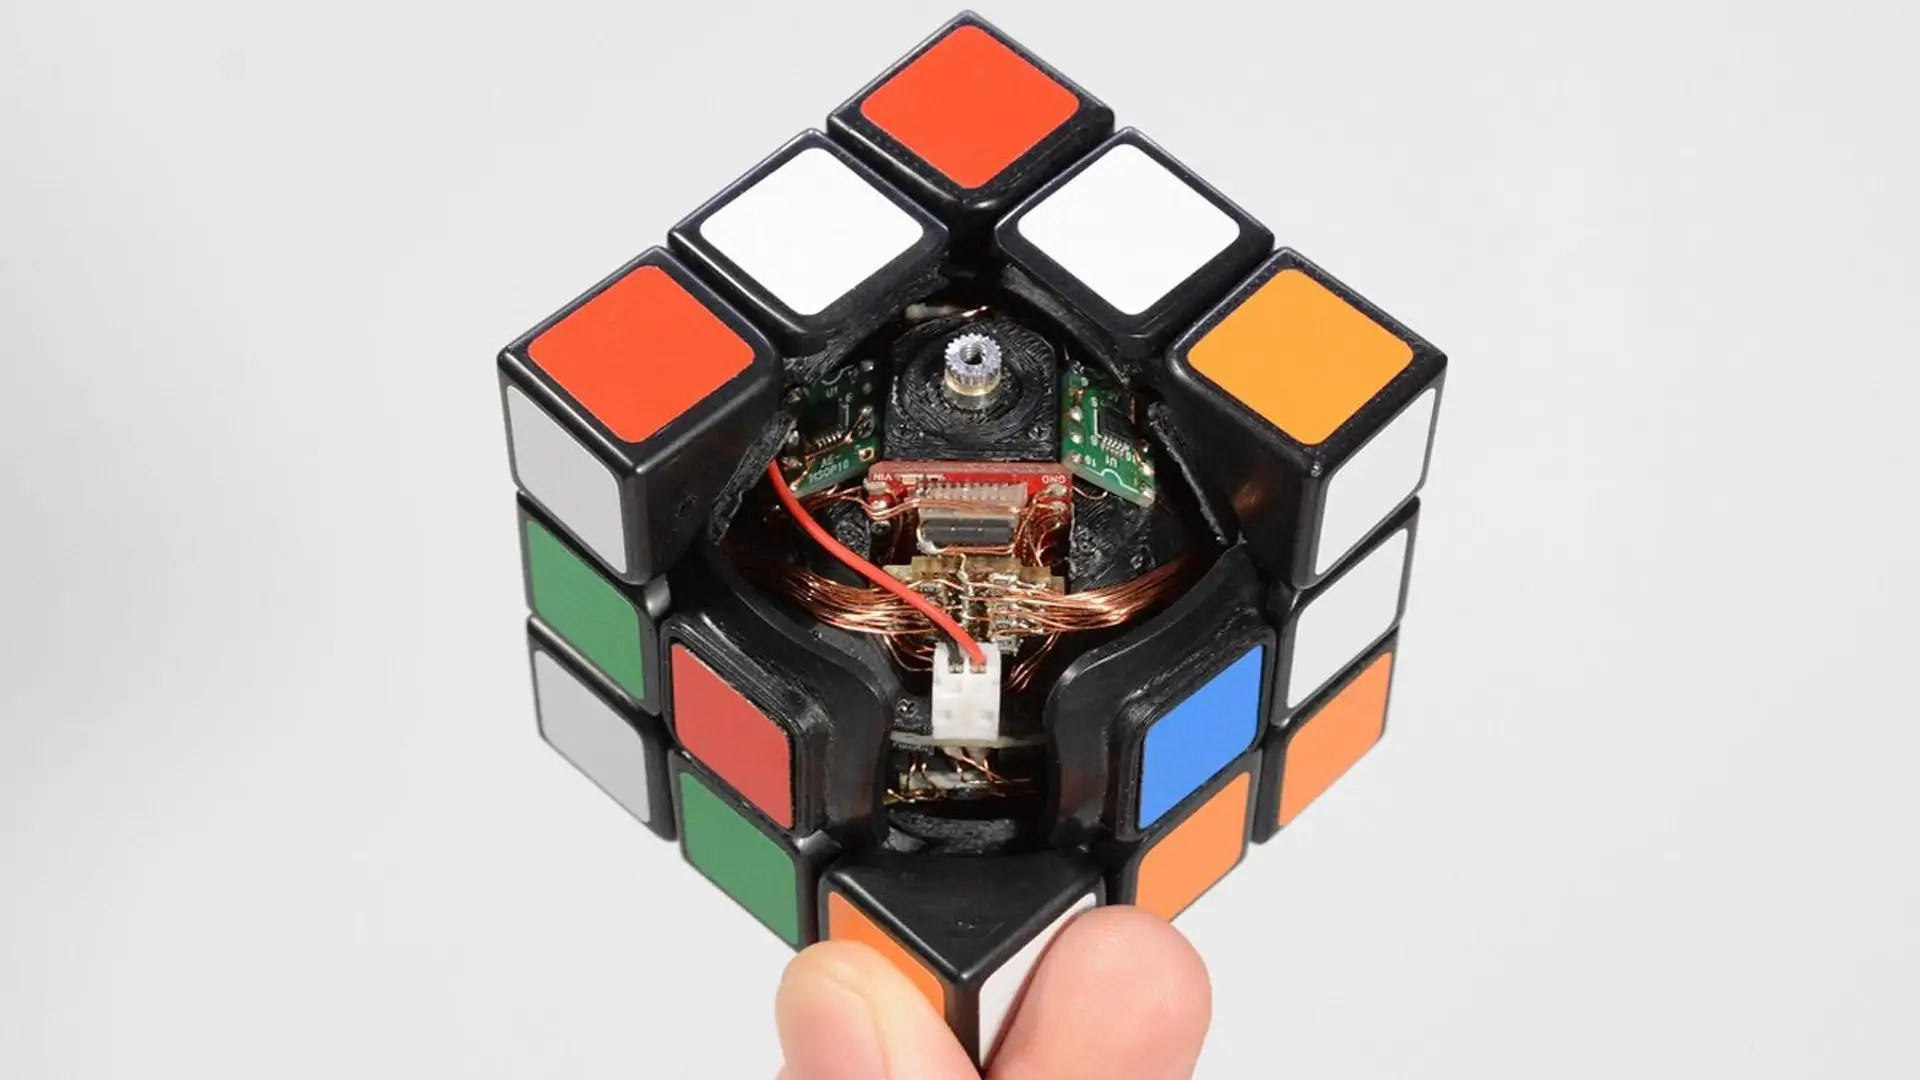 hight resolution of design process how to create a self solving rubik s cube